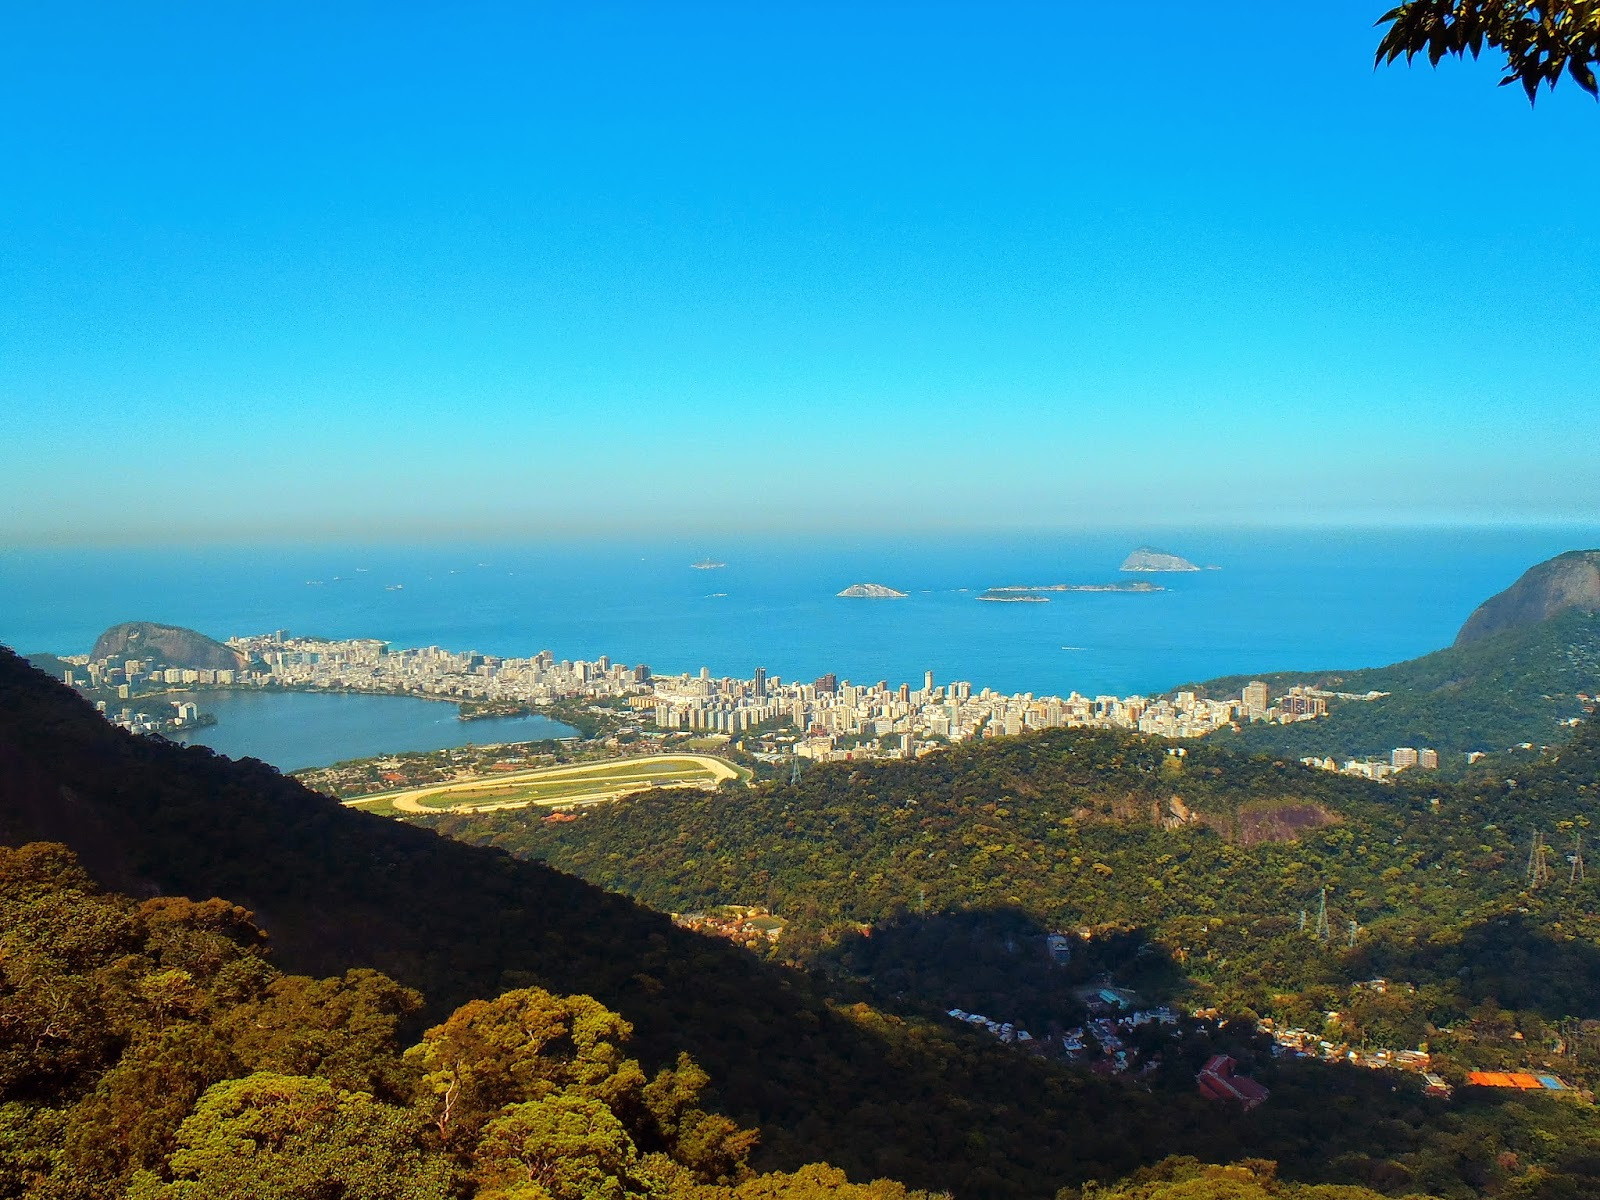 View of Rio de Janeiro from Tijuca National Park